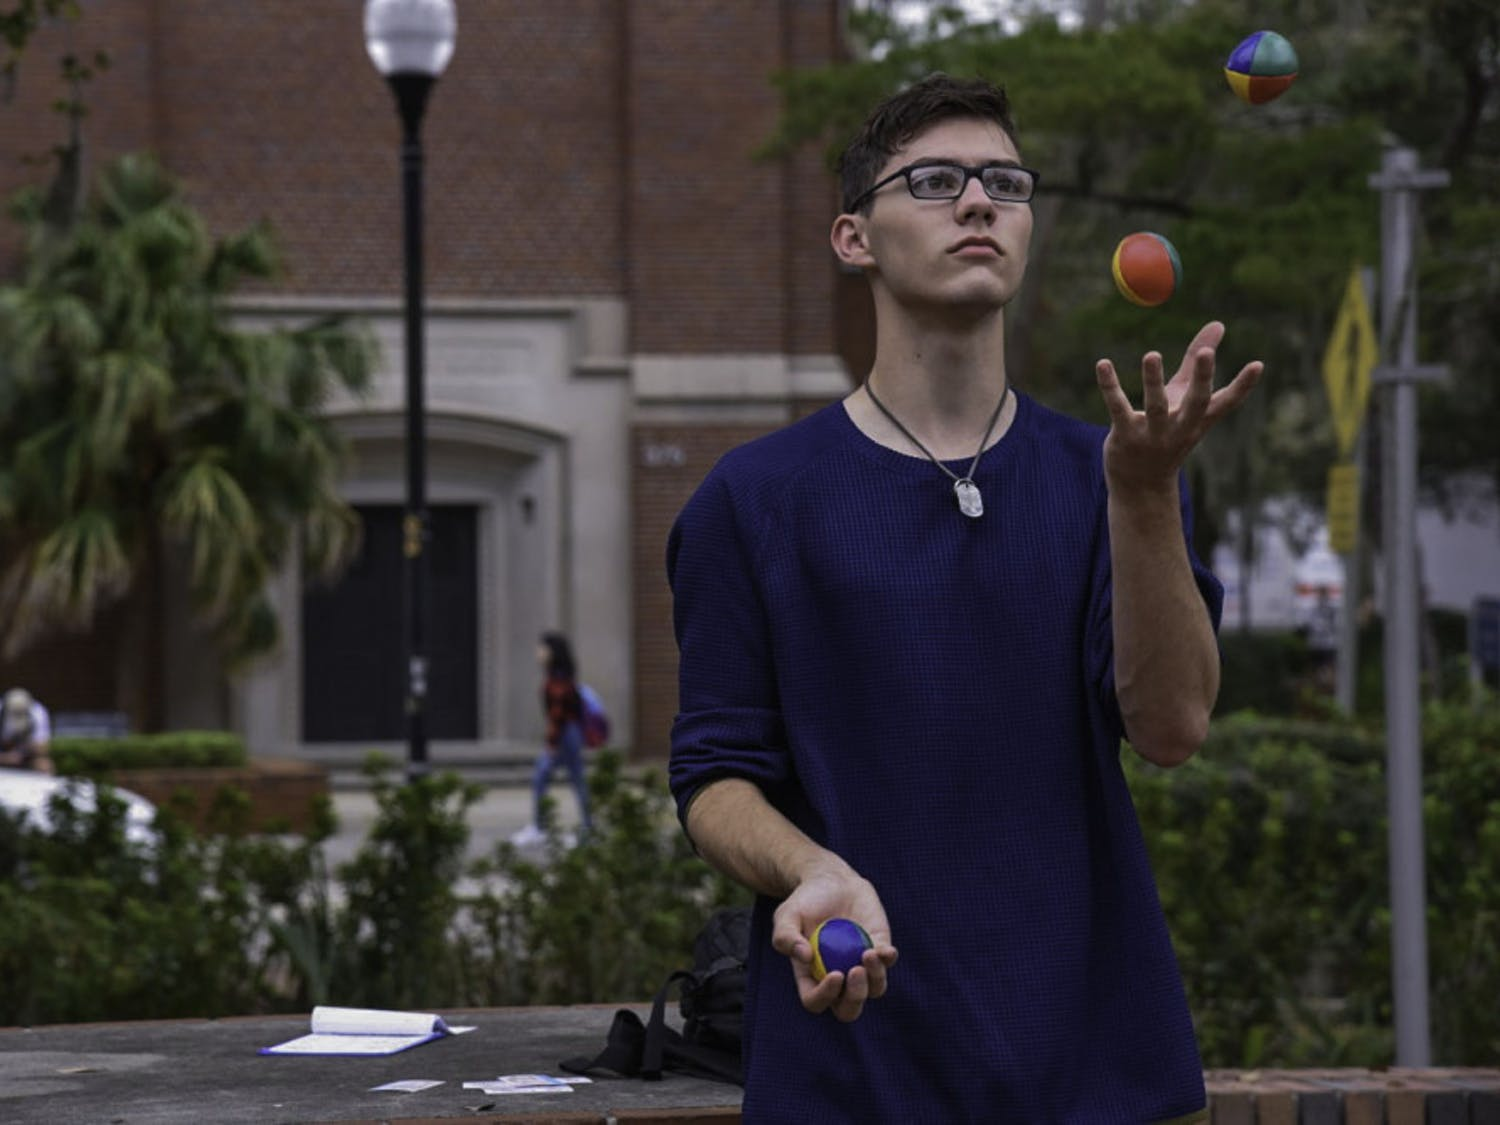 "Ethan Irvin, a 19-year-old UF mathematics sophomore, juggles on Turlington Plaza on Feb. 12. Irvin said he's been juggling for more than two years and loves doing it. ""It's a good stress reliever,"" he said."